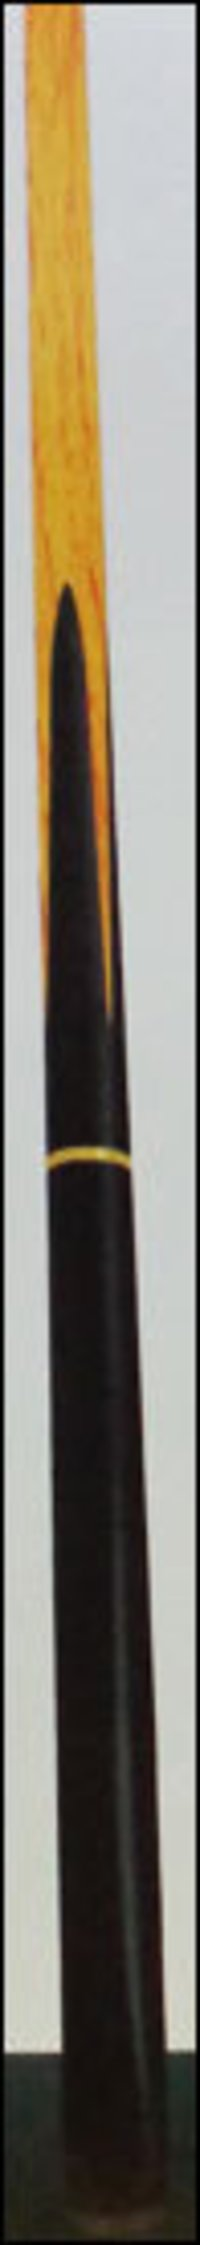 Durable Snooker Cues